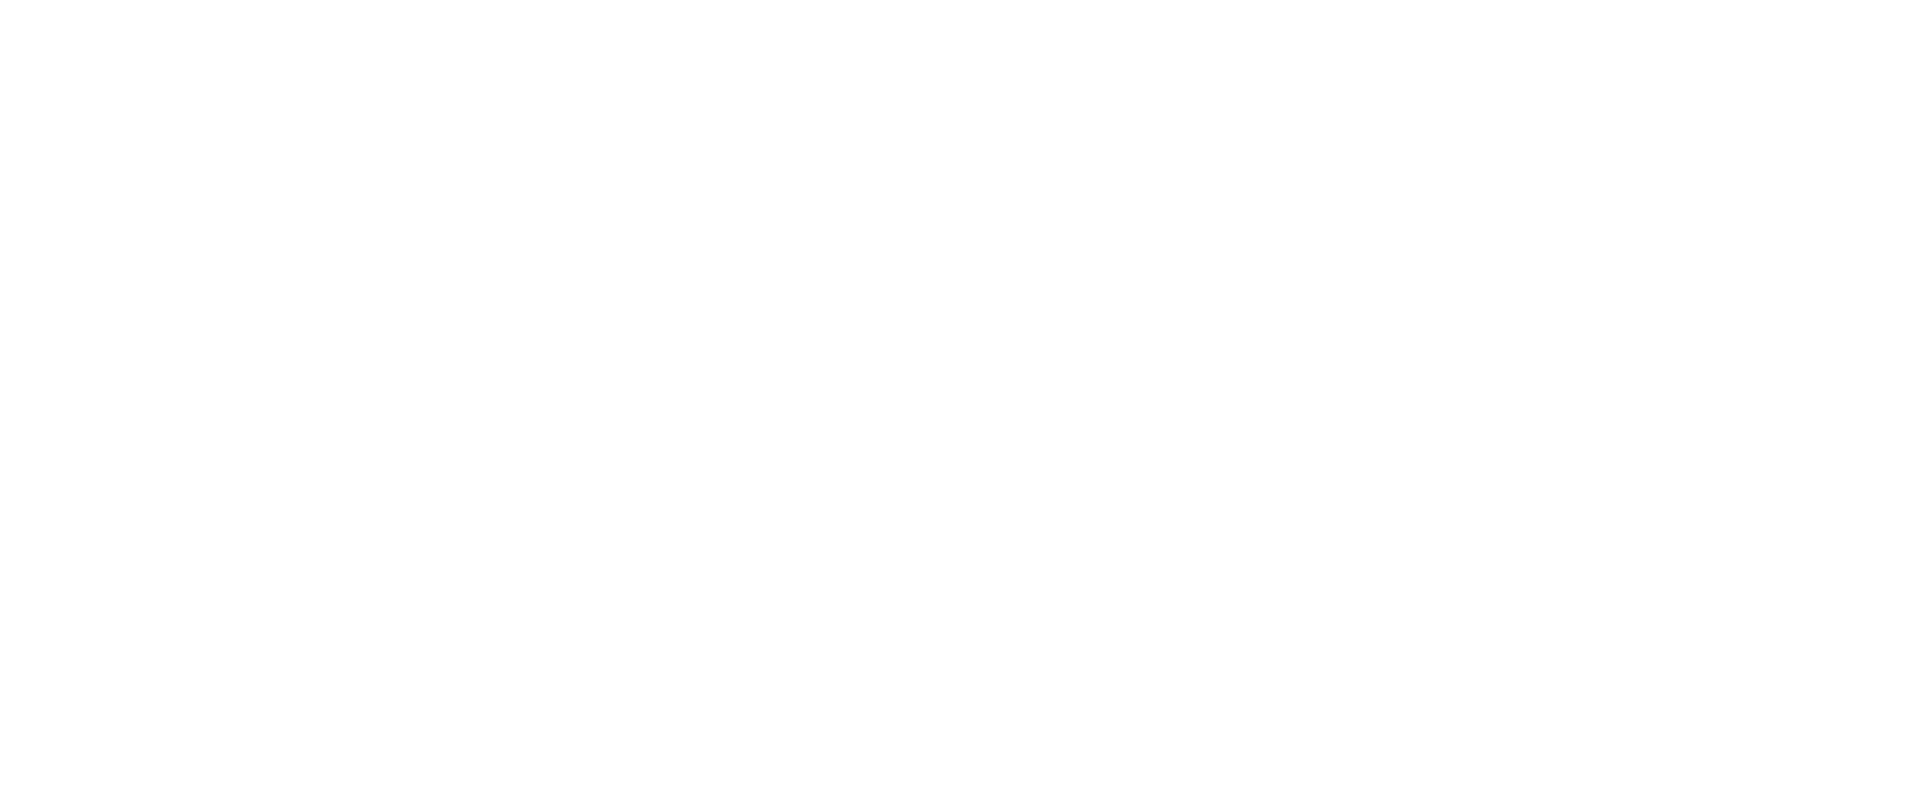 You can achieve anything that you want